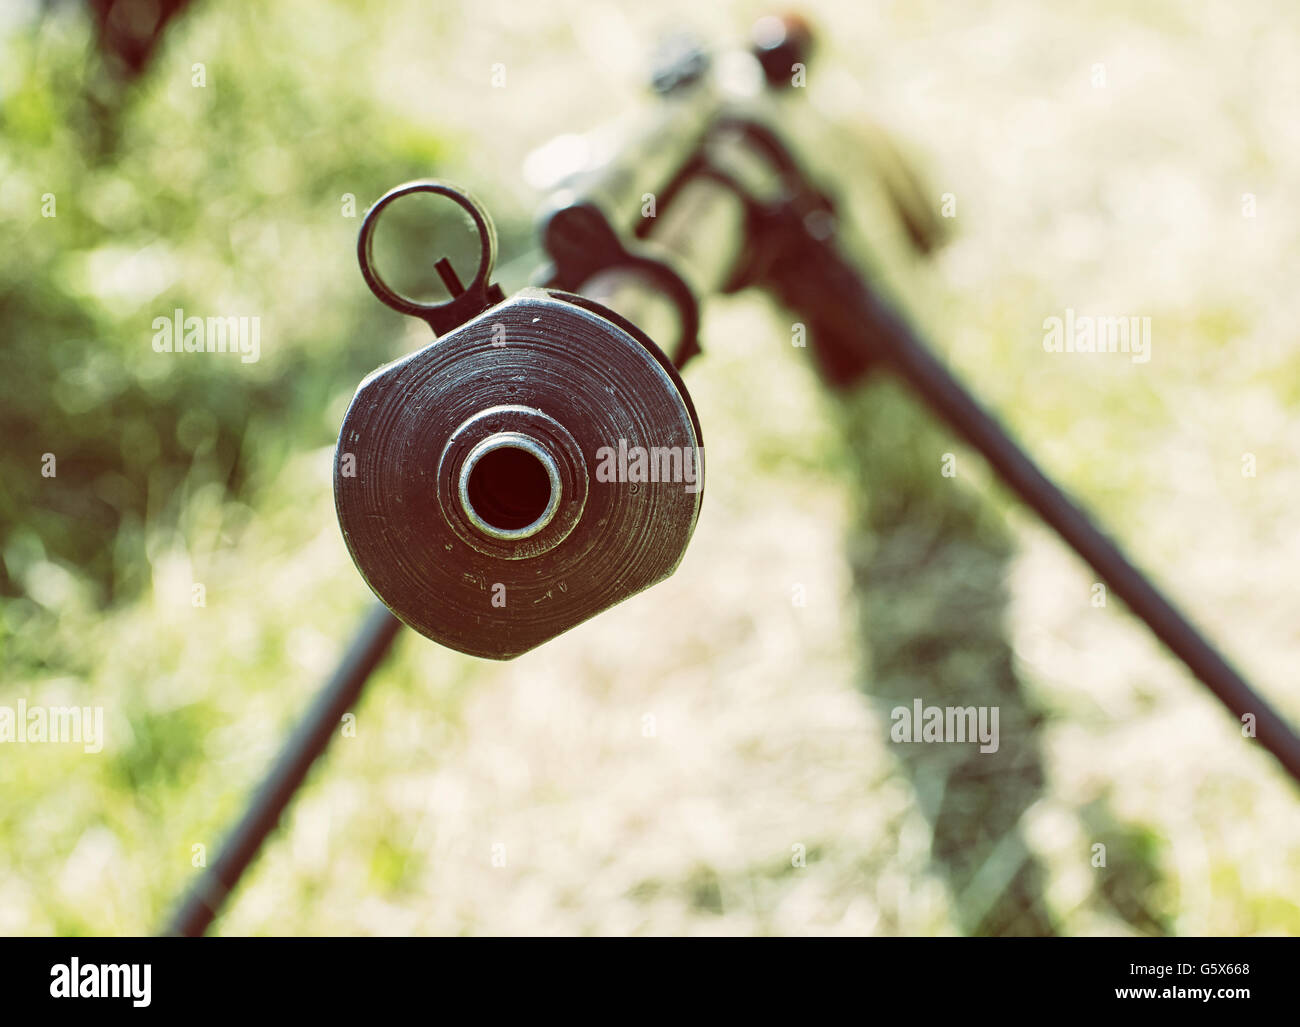 Close up photo of heavy sniper rifle from World War II. Gun scene. Gun barrel. Armed conflict. Military theme. Portable - Stock Image